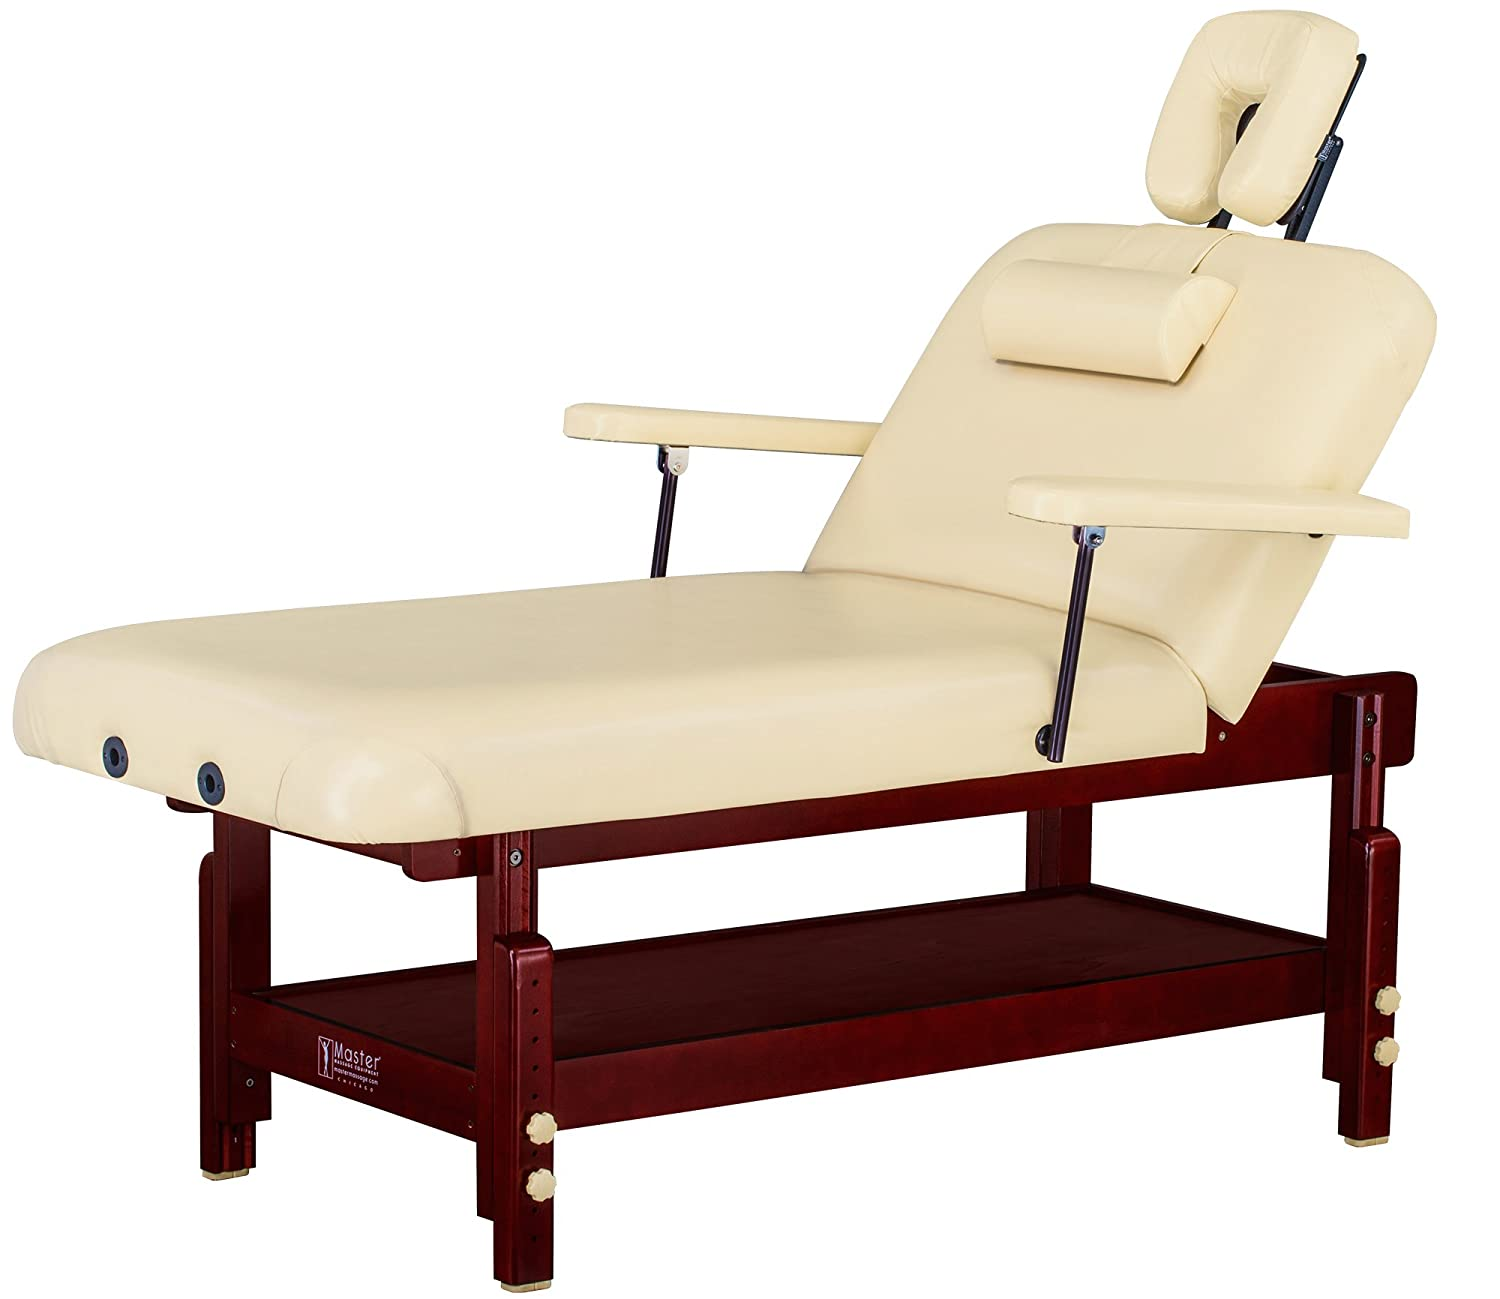 Master Massage 31'SpaMaster Stationary LX Massage Table Package, Sand WITH MEMORY FOAM Master Massage Tables